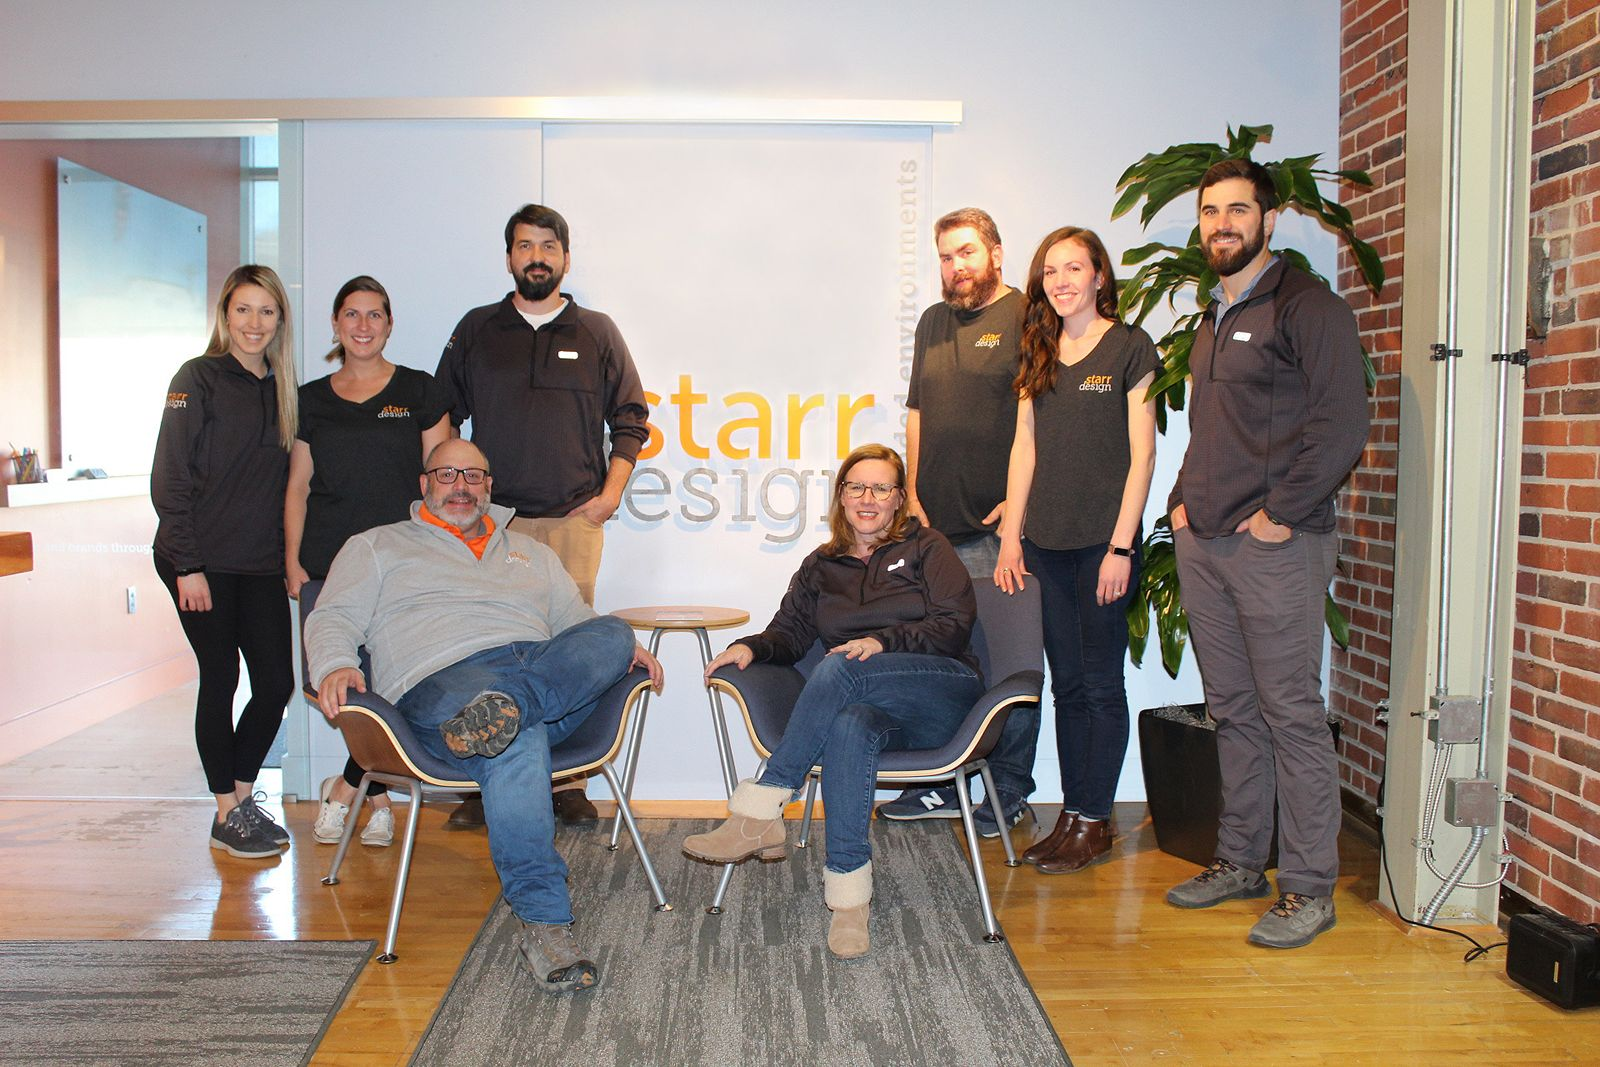 starrdesign named Best and Brightest Companies to Work For in the Nation For 2019